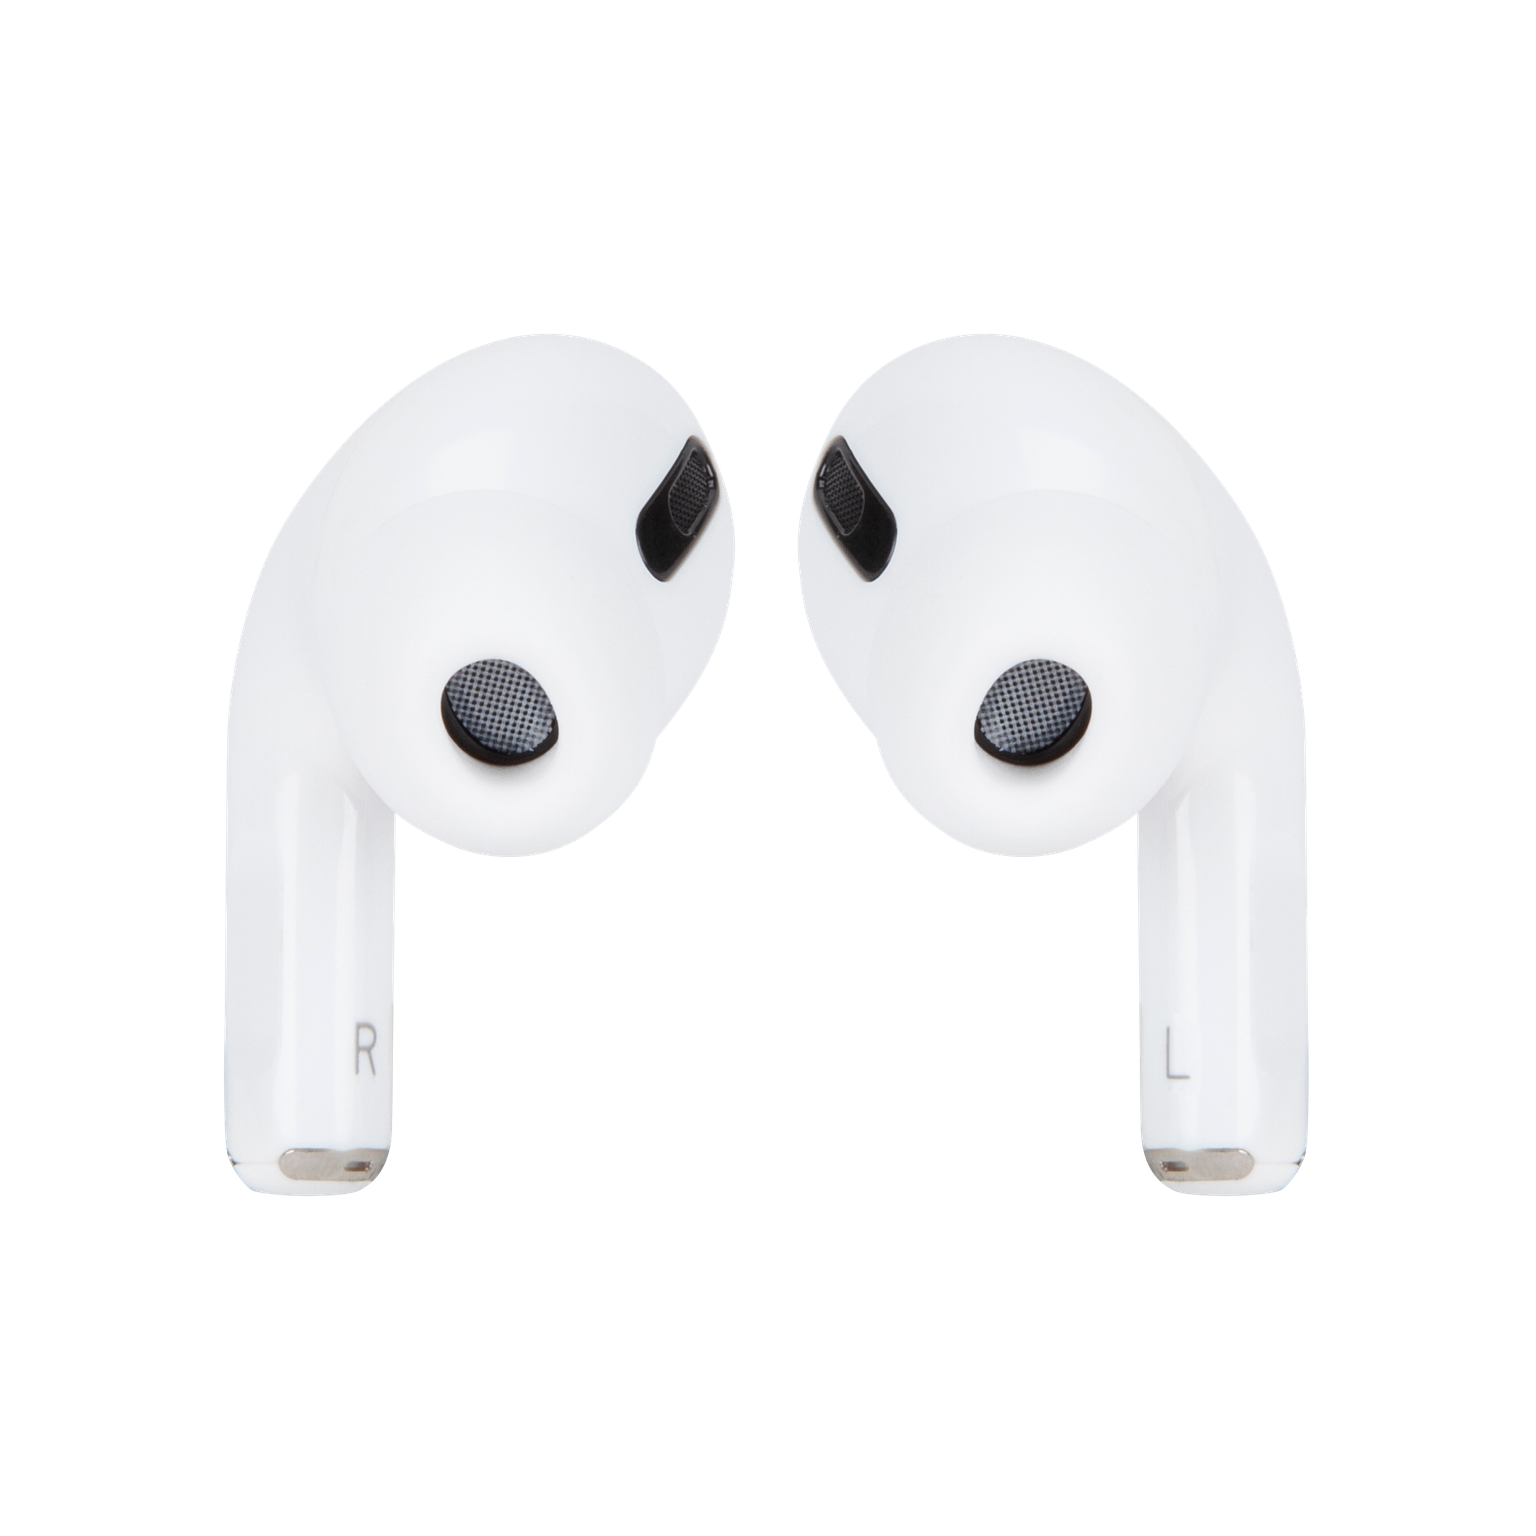 Pair of Apple compatible wireless earbuds from Top Good Chain